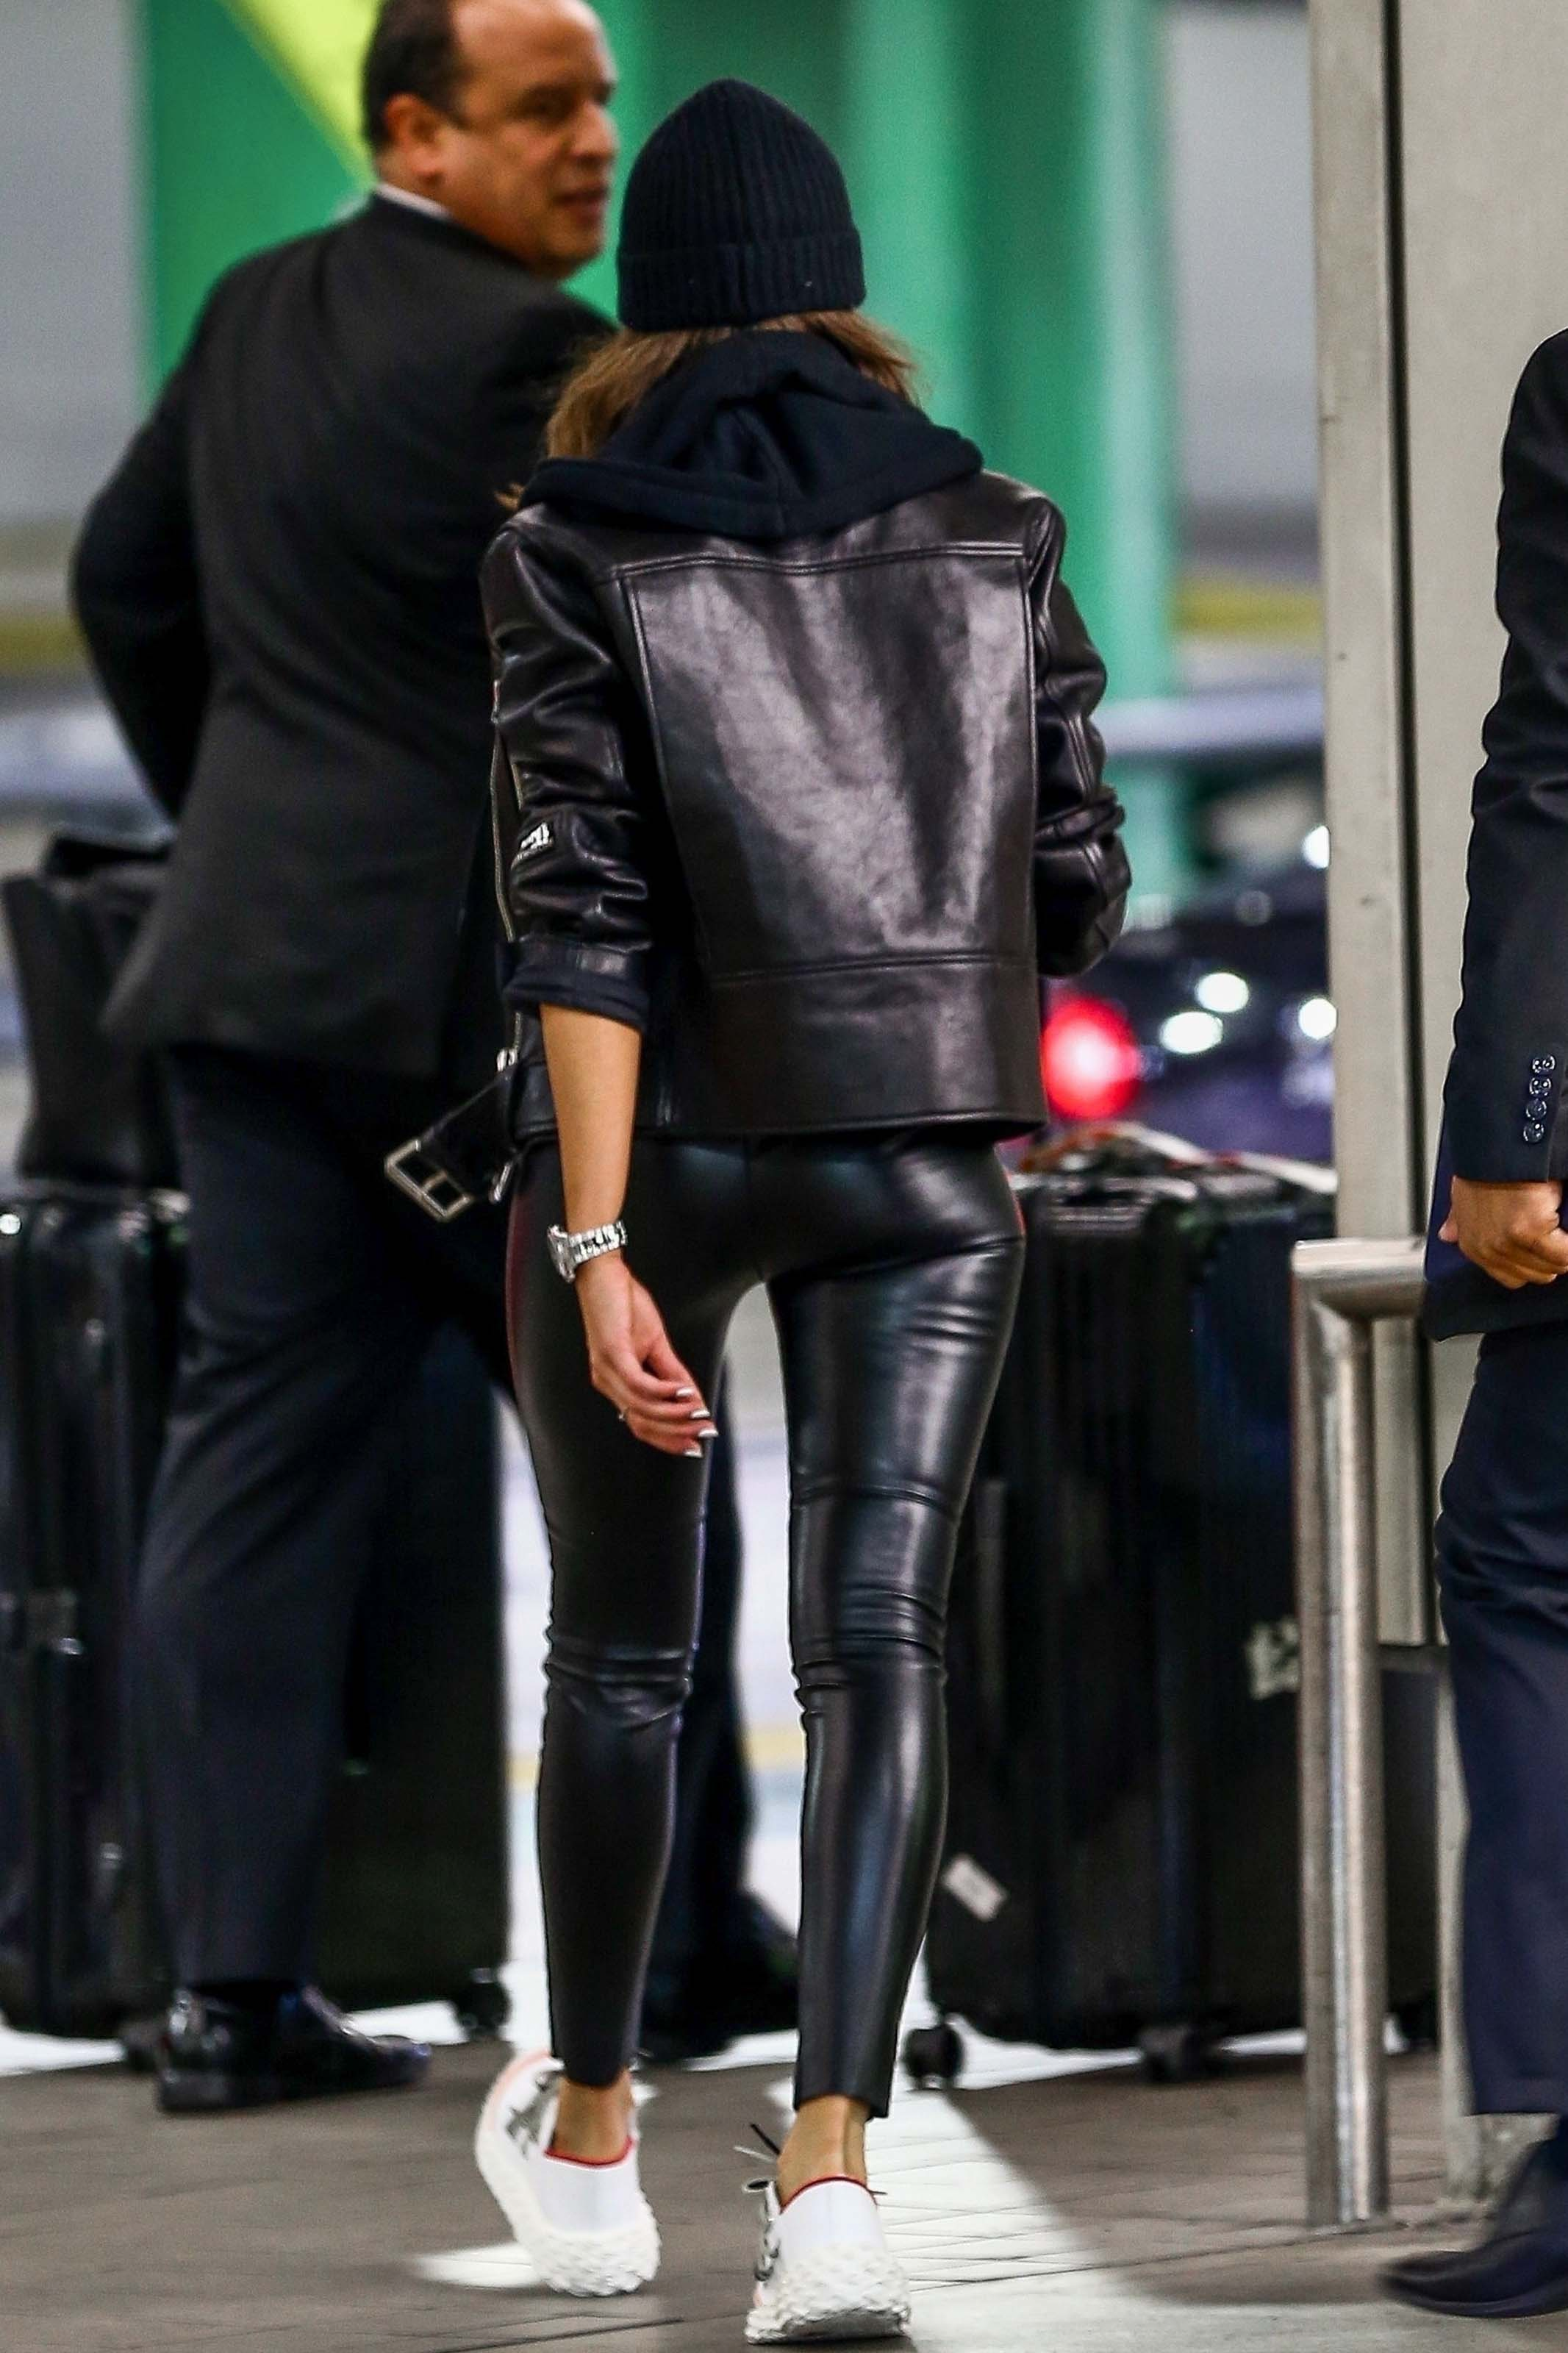 Olivia Culpo at the airport in Miami